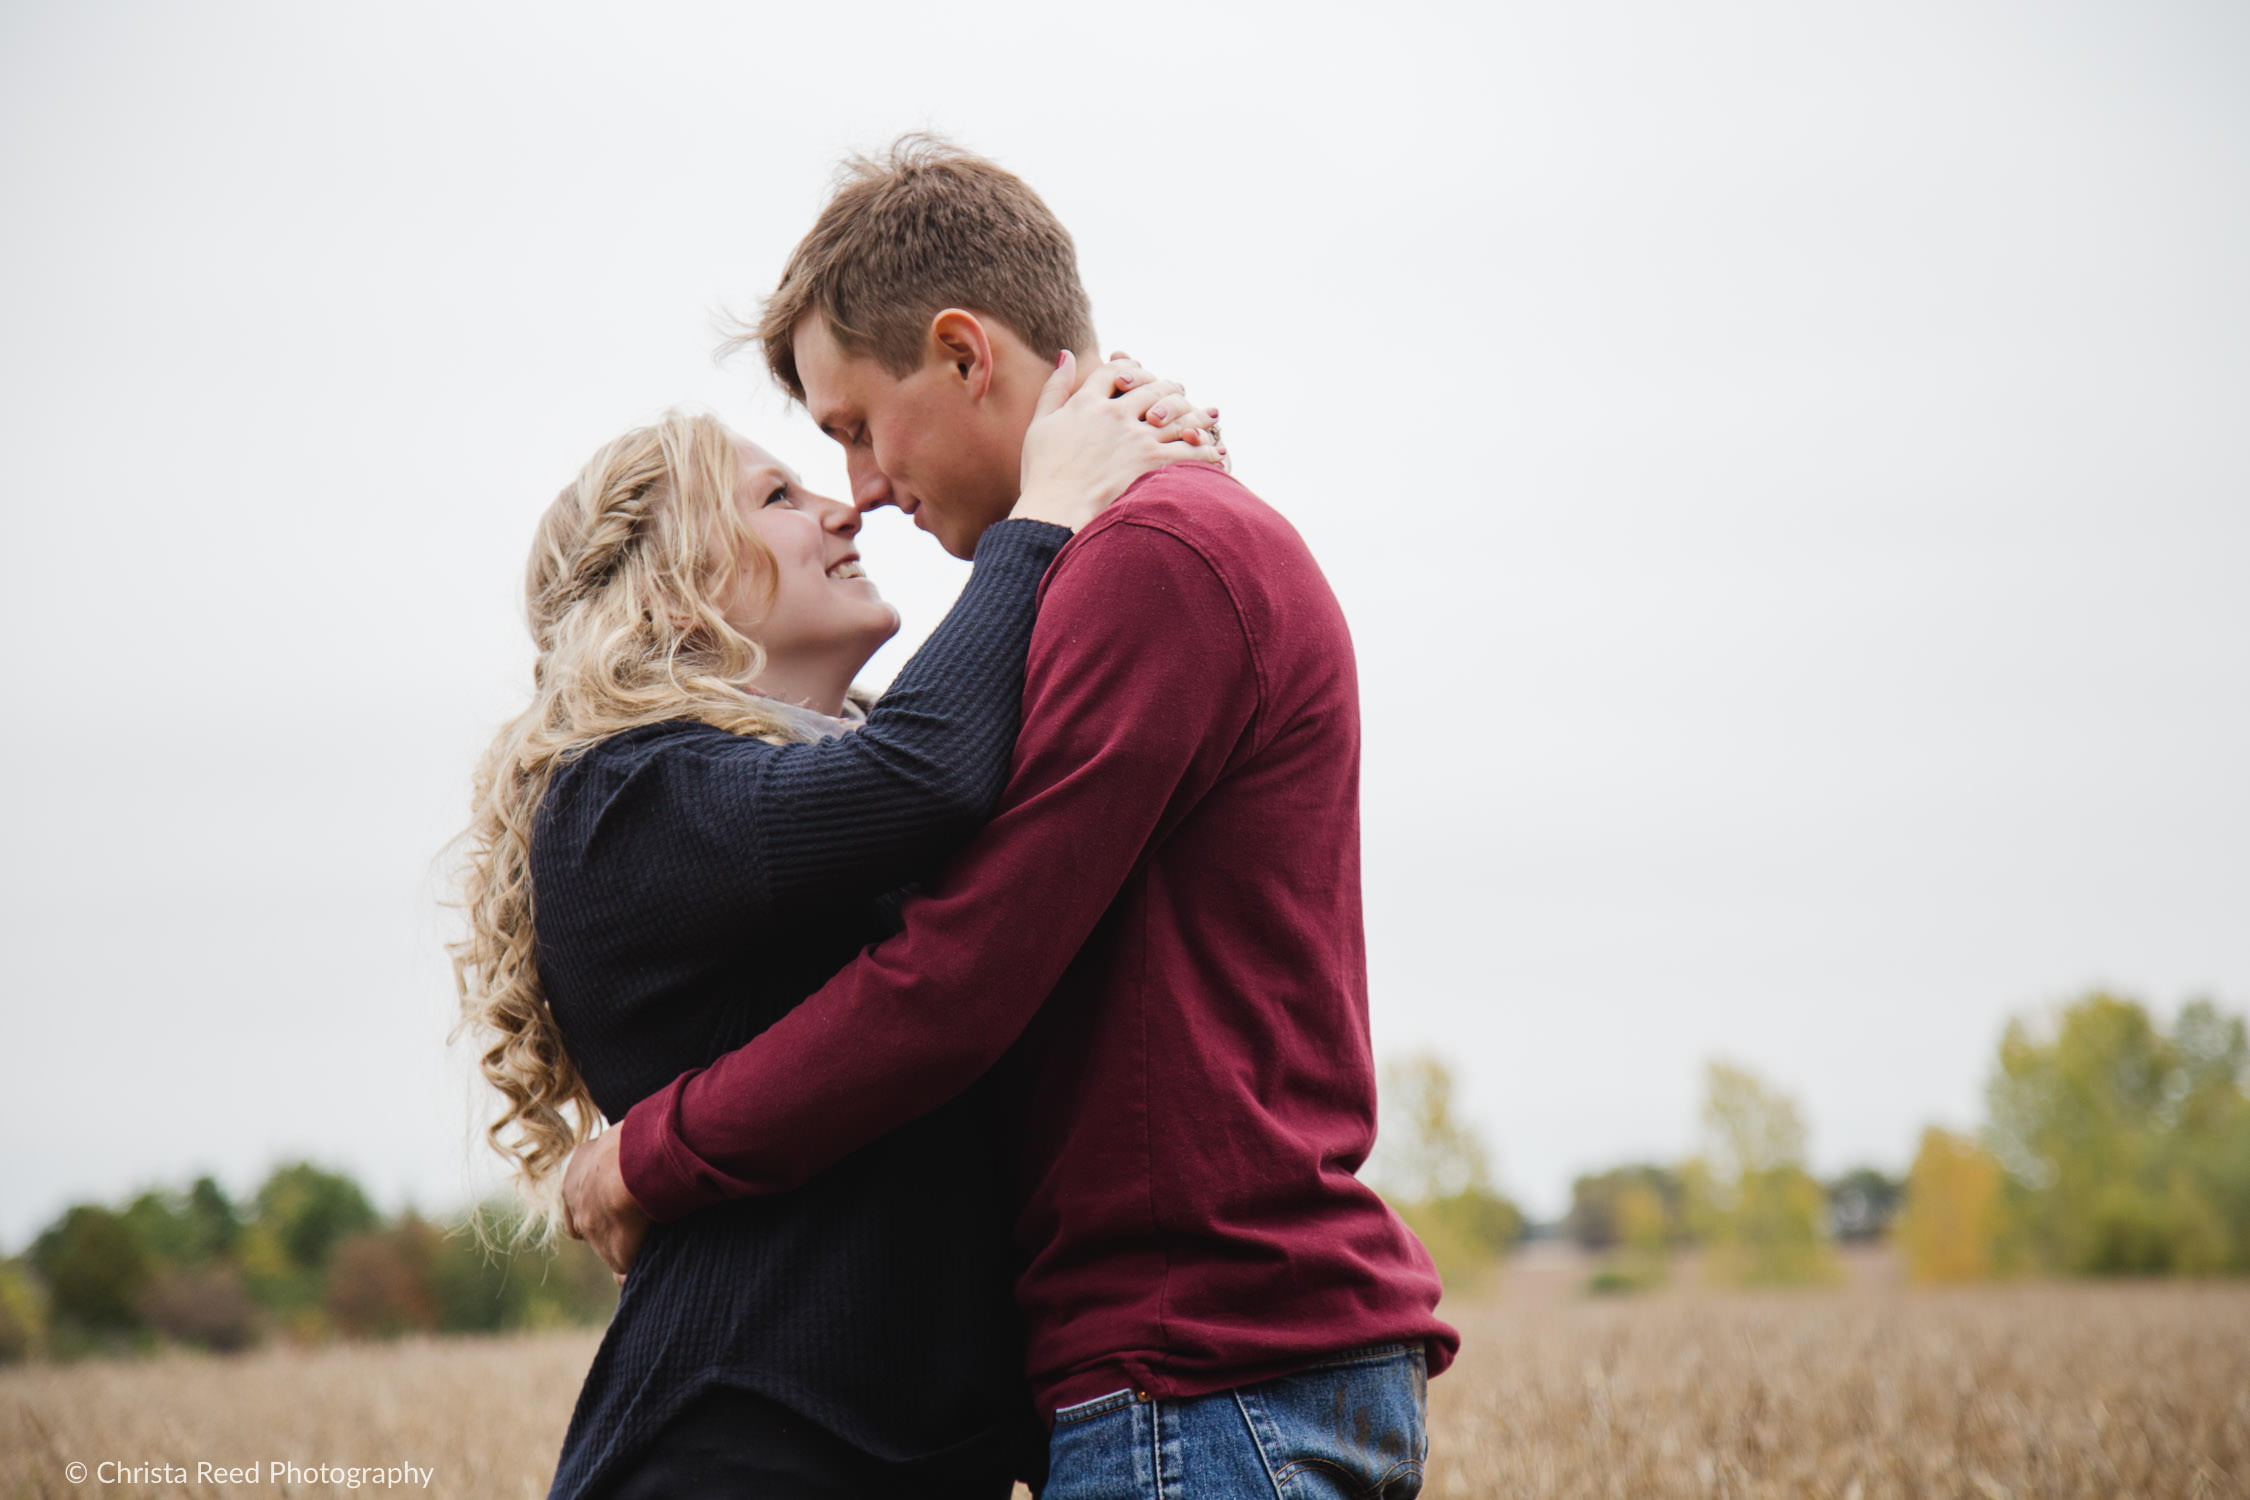 henderson minnesota engagement shoot in a farm field